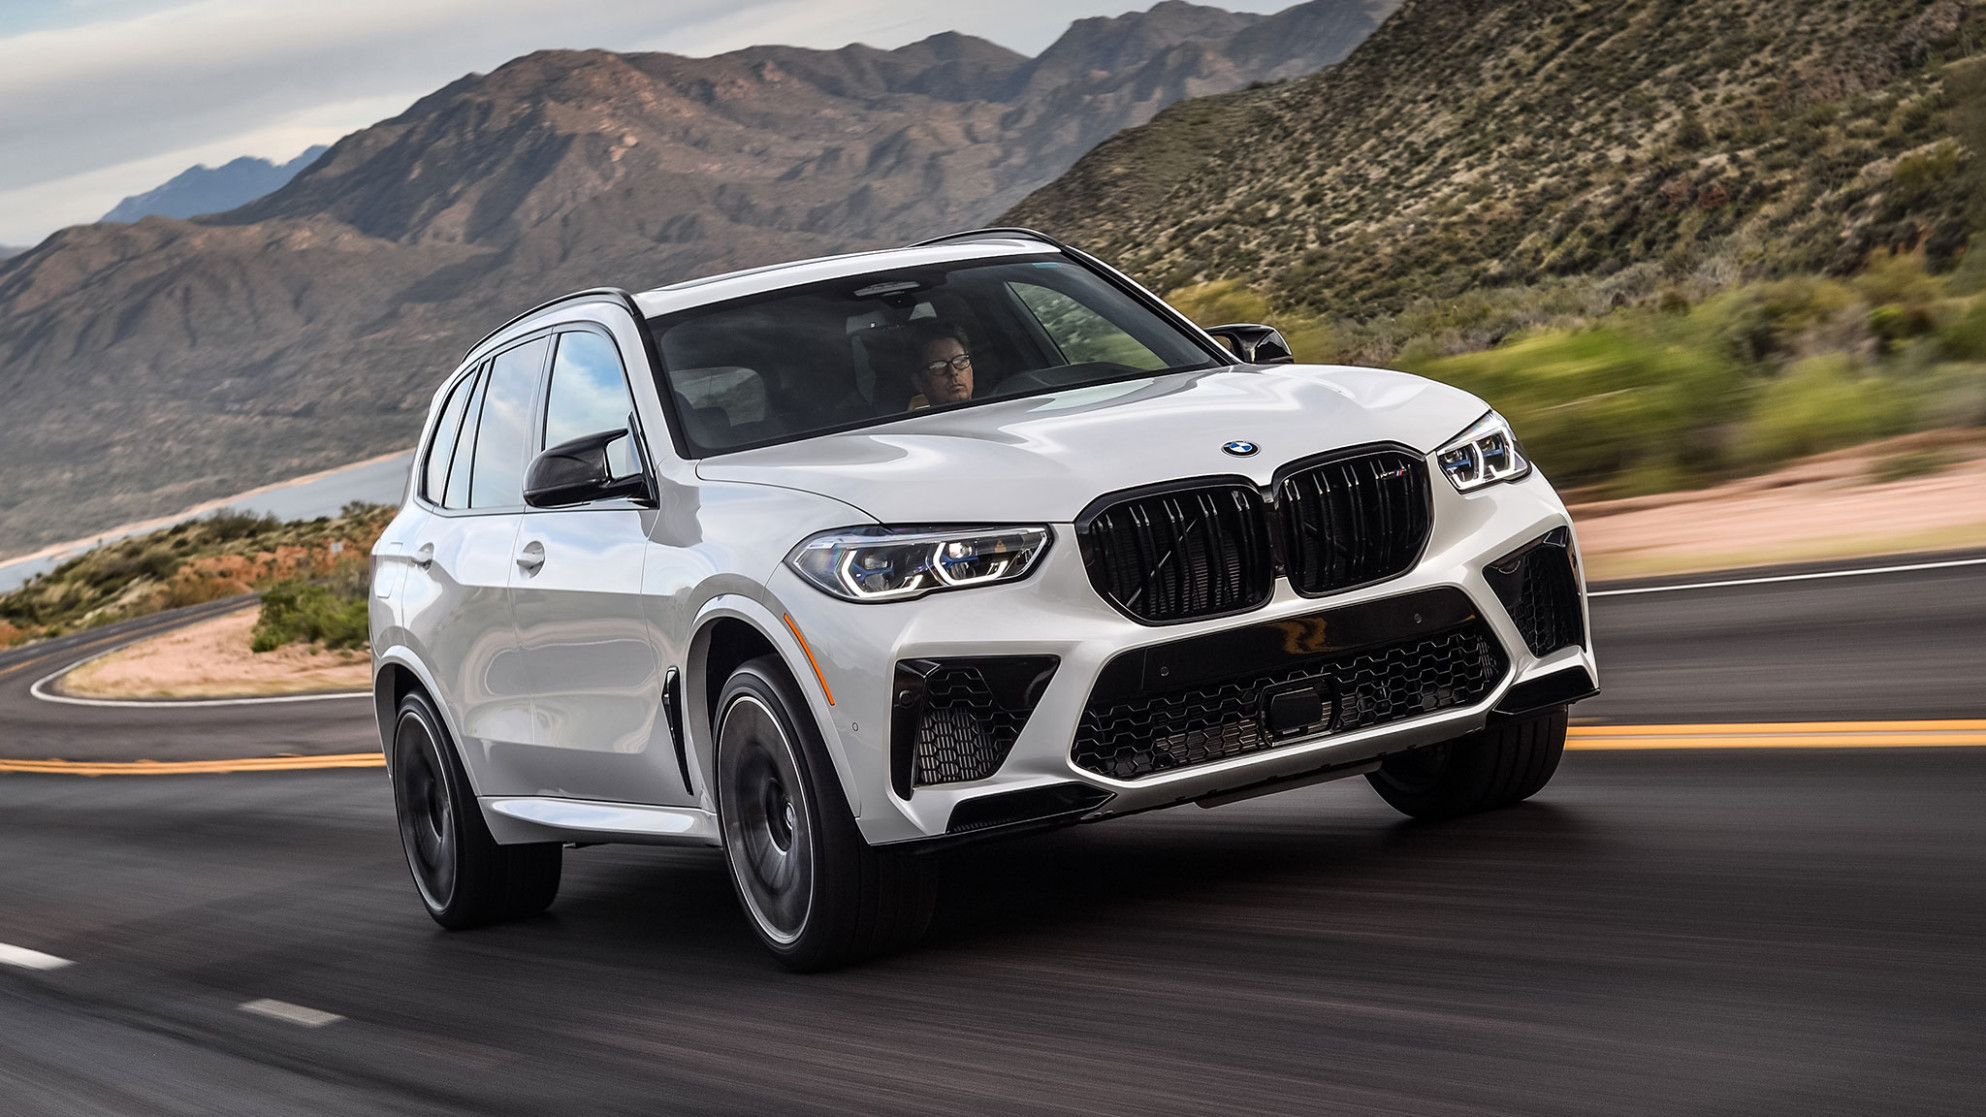 11 BMW X11 M First Drive Review: Master of Illusion - 2020 bmw jeep